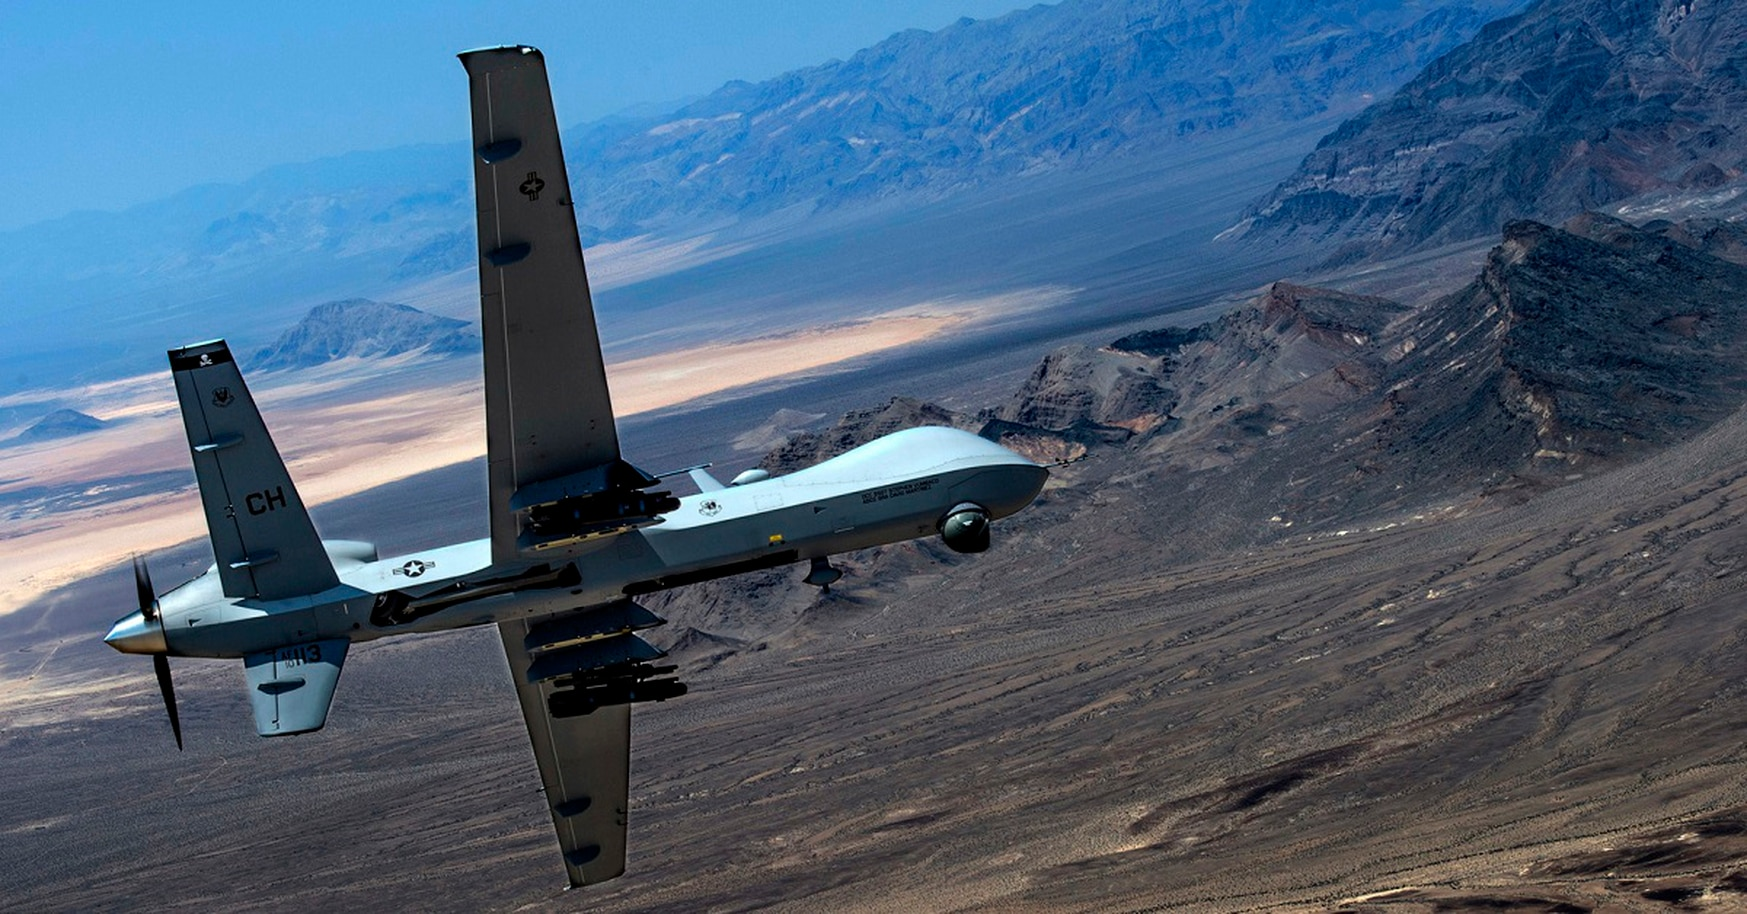 An MQ- Reaper remotely piloted aircraft performs aerial maneuvers over Creech Air Force Base, Nev., June 25, 2015. Such flights could be impacted if altimeters start to fail. (Senior Airman Cory D. Payne/U.S. Air Force)